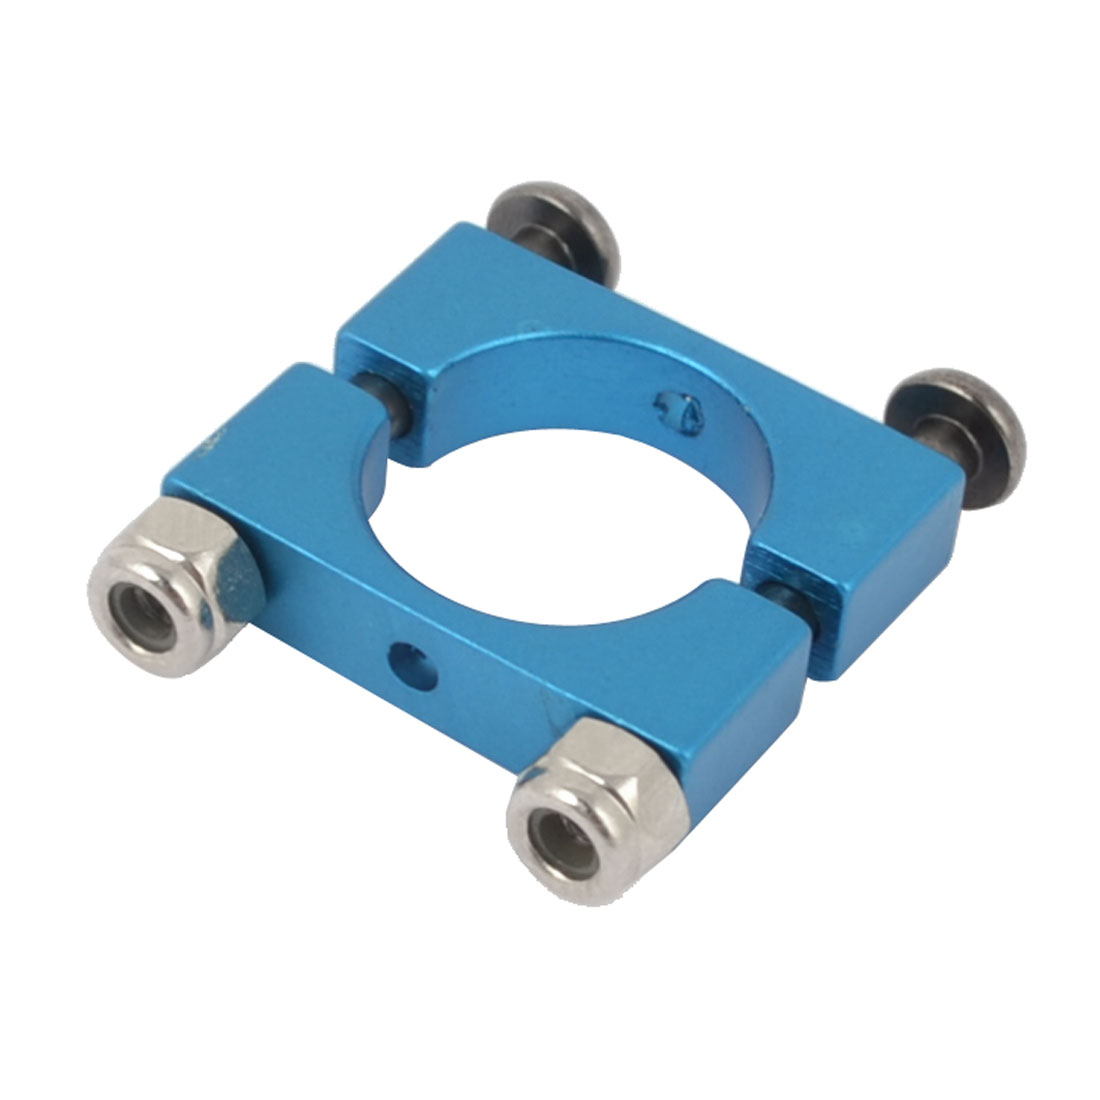 12mm Blue Aluminum Clamp for Carbon Fiber Tube Quadcopter Hexacopter Octocopter